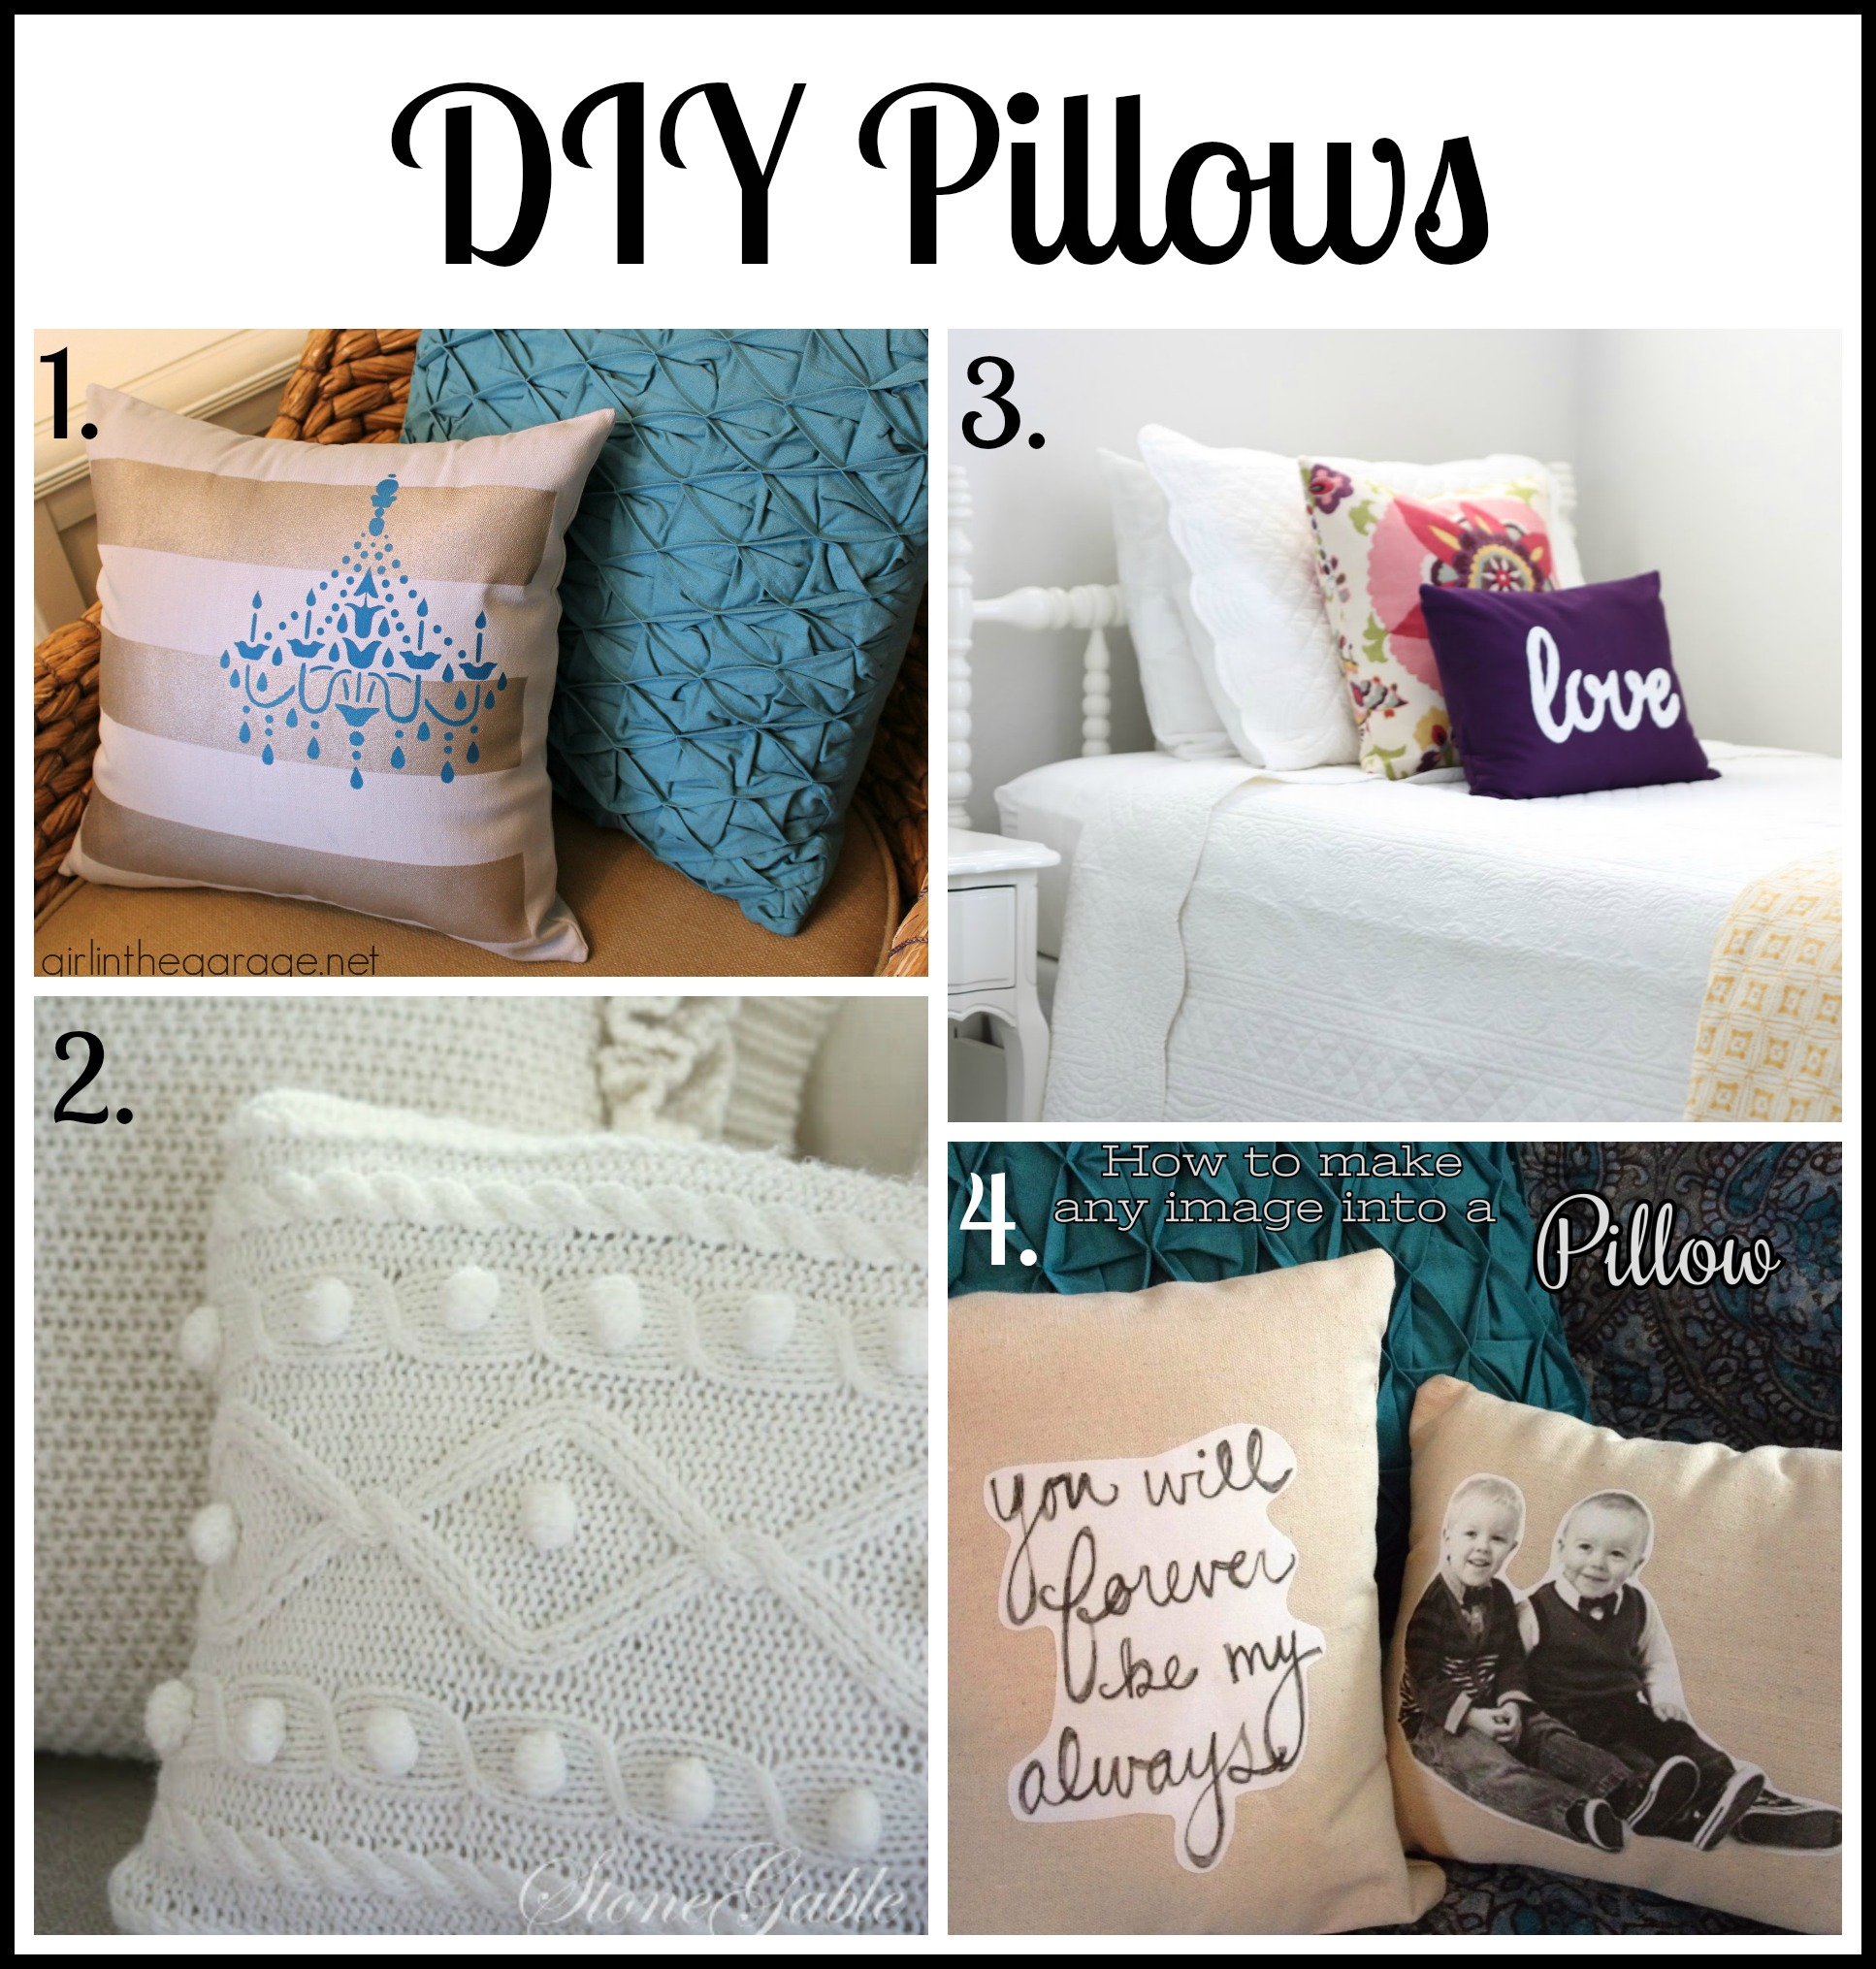 Diy Decorative Pillow Ideas: 30+ Budget Friendly DIY Decorating Ideas   Girl in the Garage®,